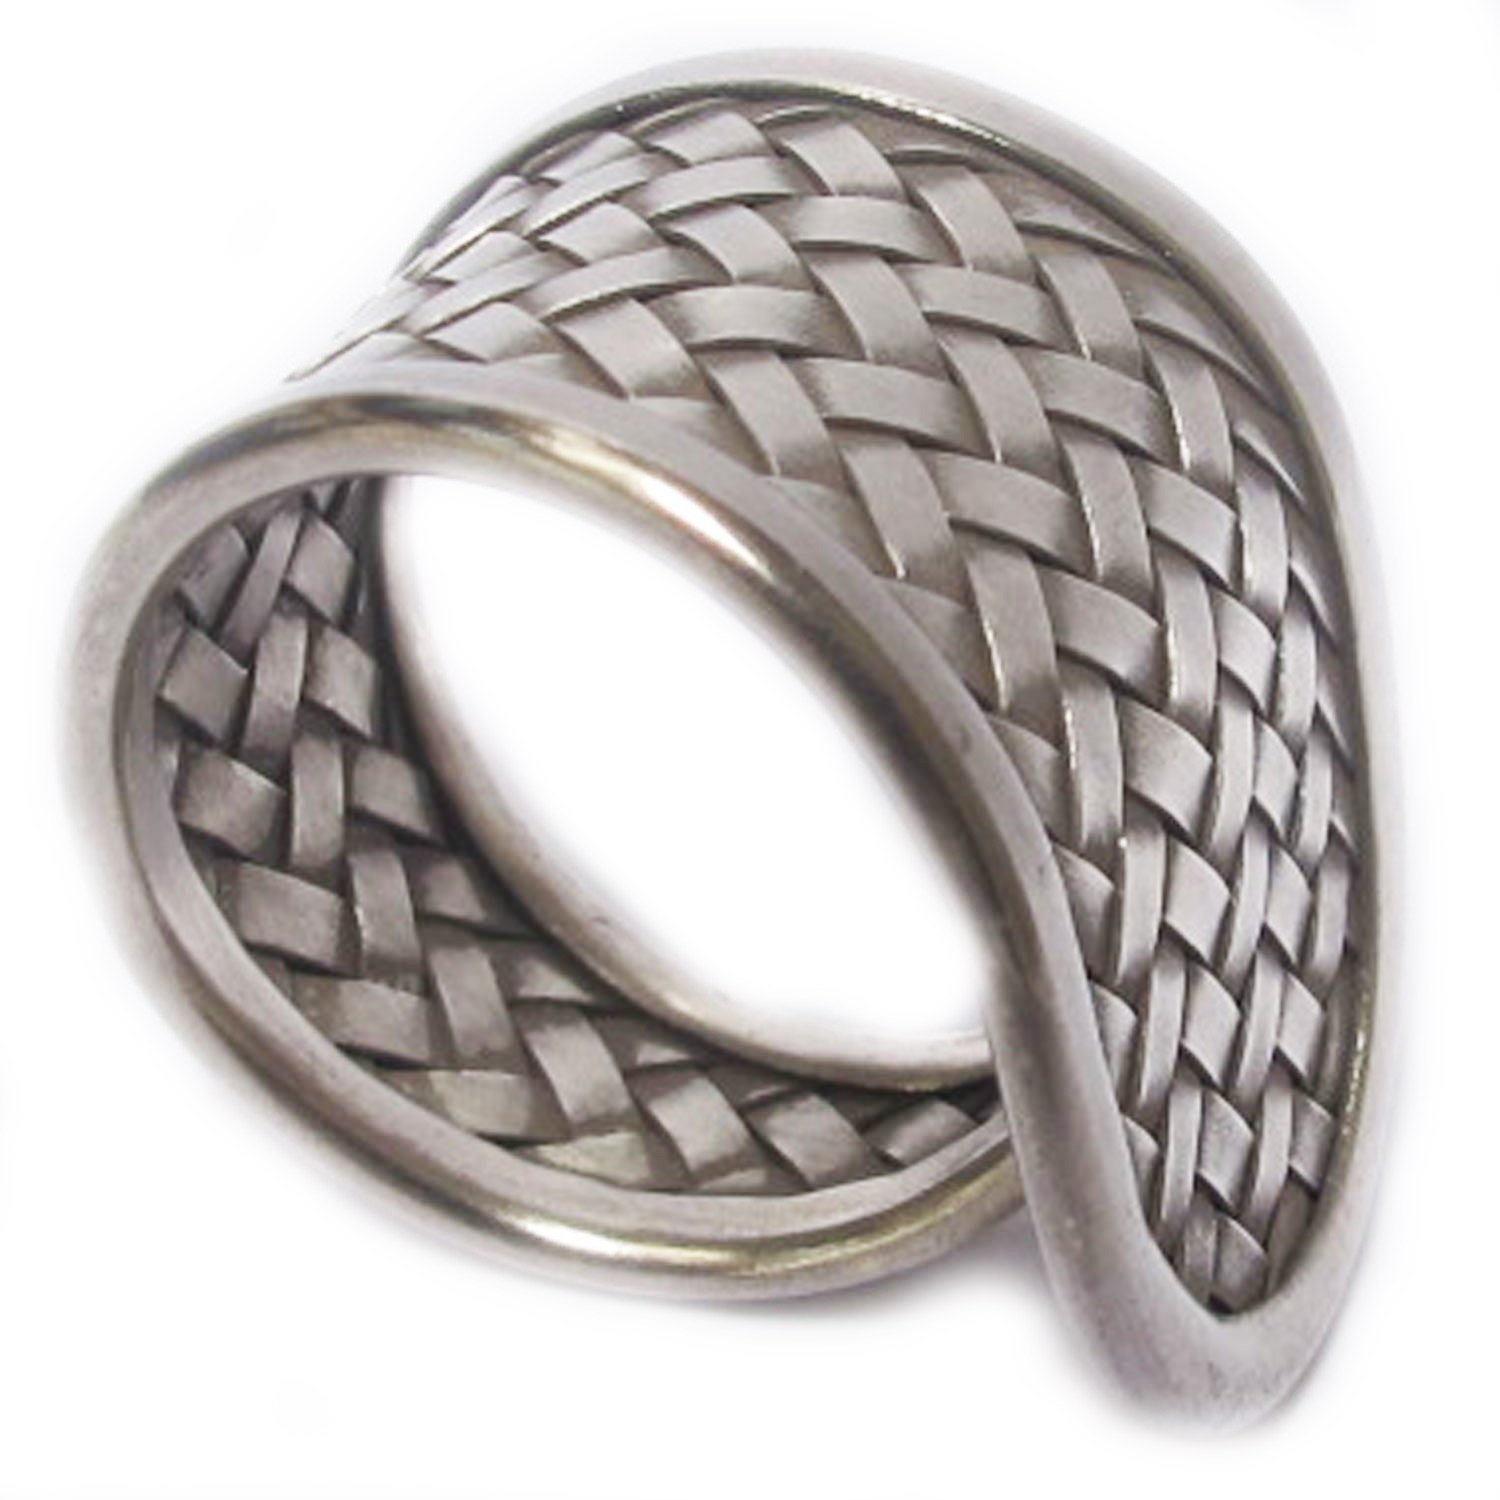 PURE 99.5/% CLASSIC GENUINE THAI KAREN HILL TRIBE SILVER RING SIZE NO.8 BY HANDMADE Adjustable 8-12 Most Welcome  WOVEN WEIGHT 9.57 G KAREAN HILL TRIBE BOX 13-102